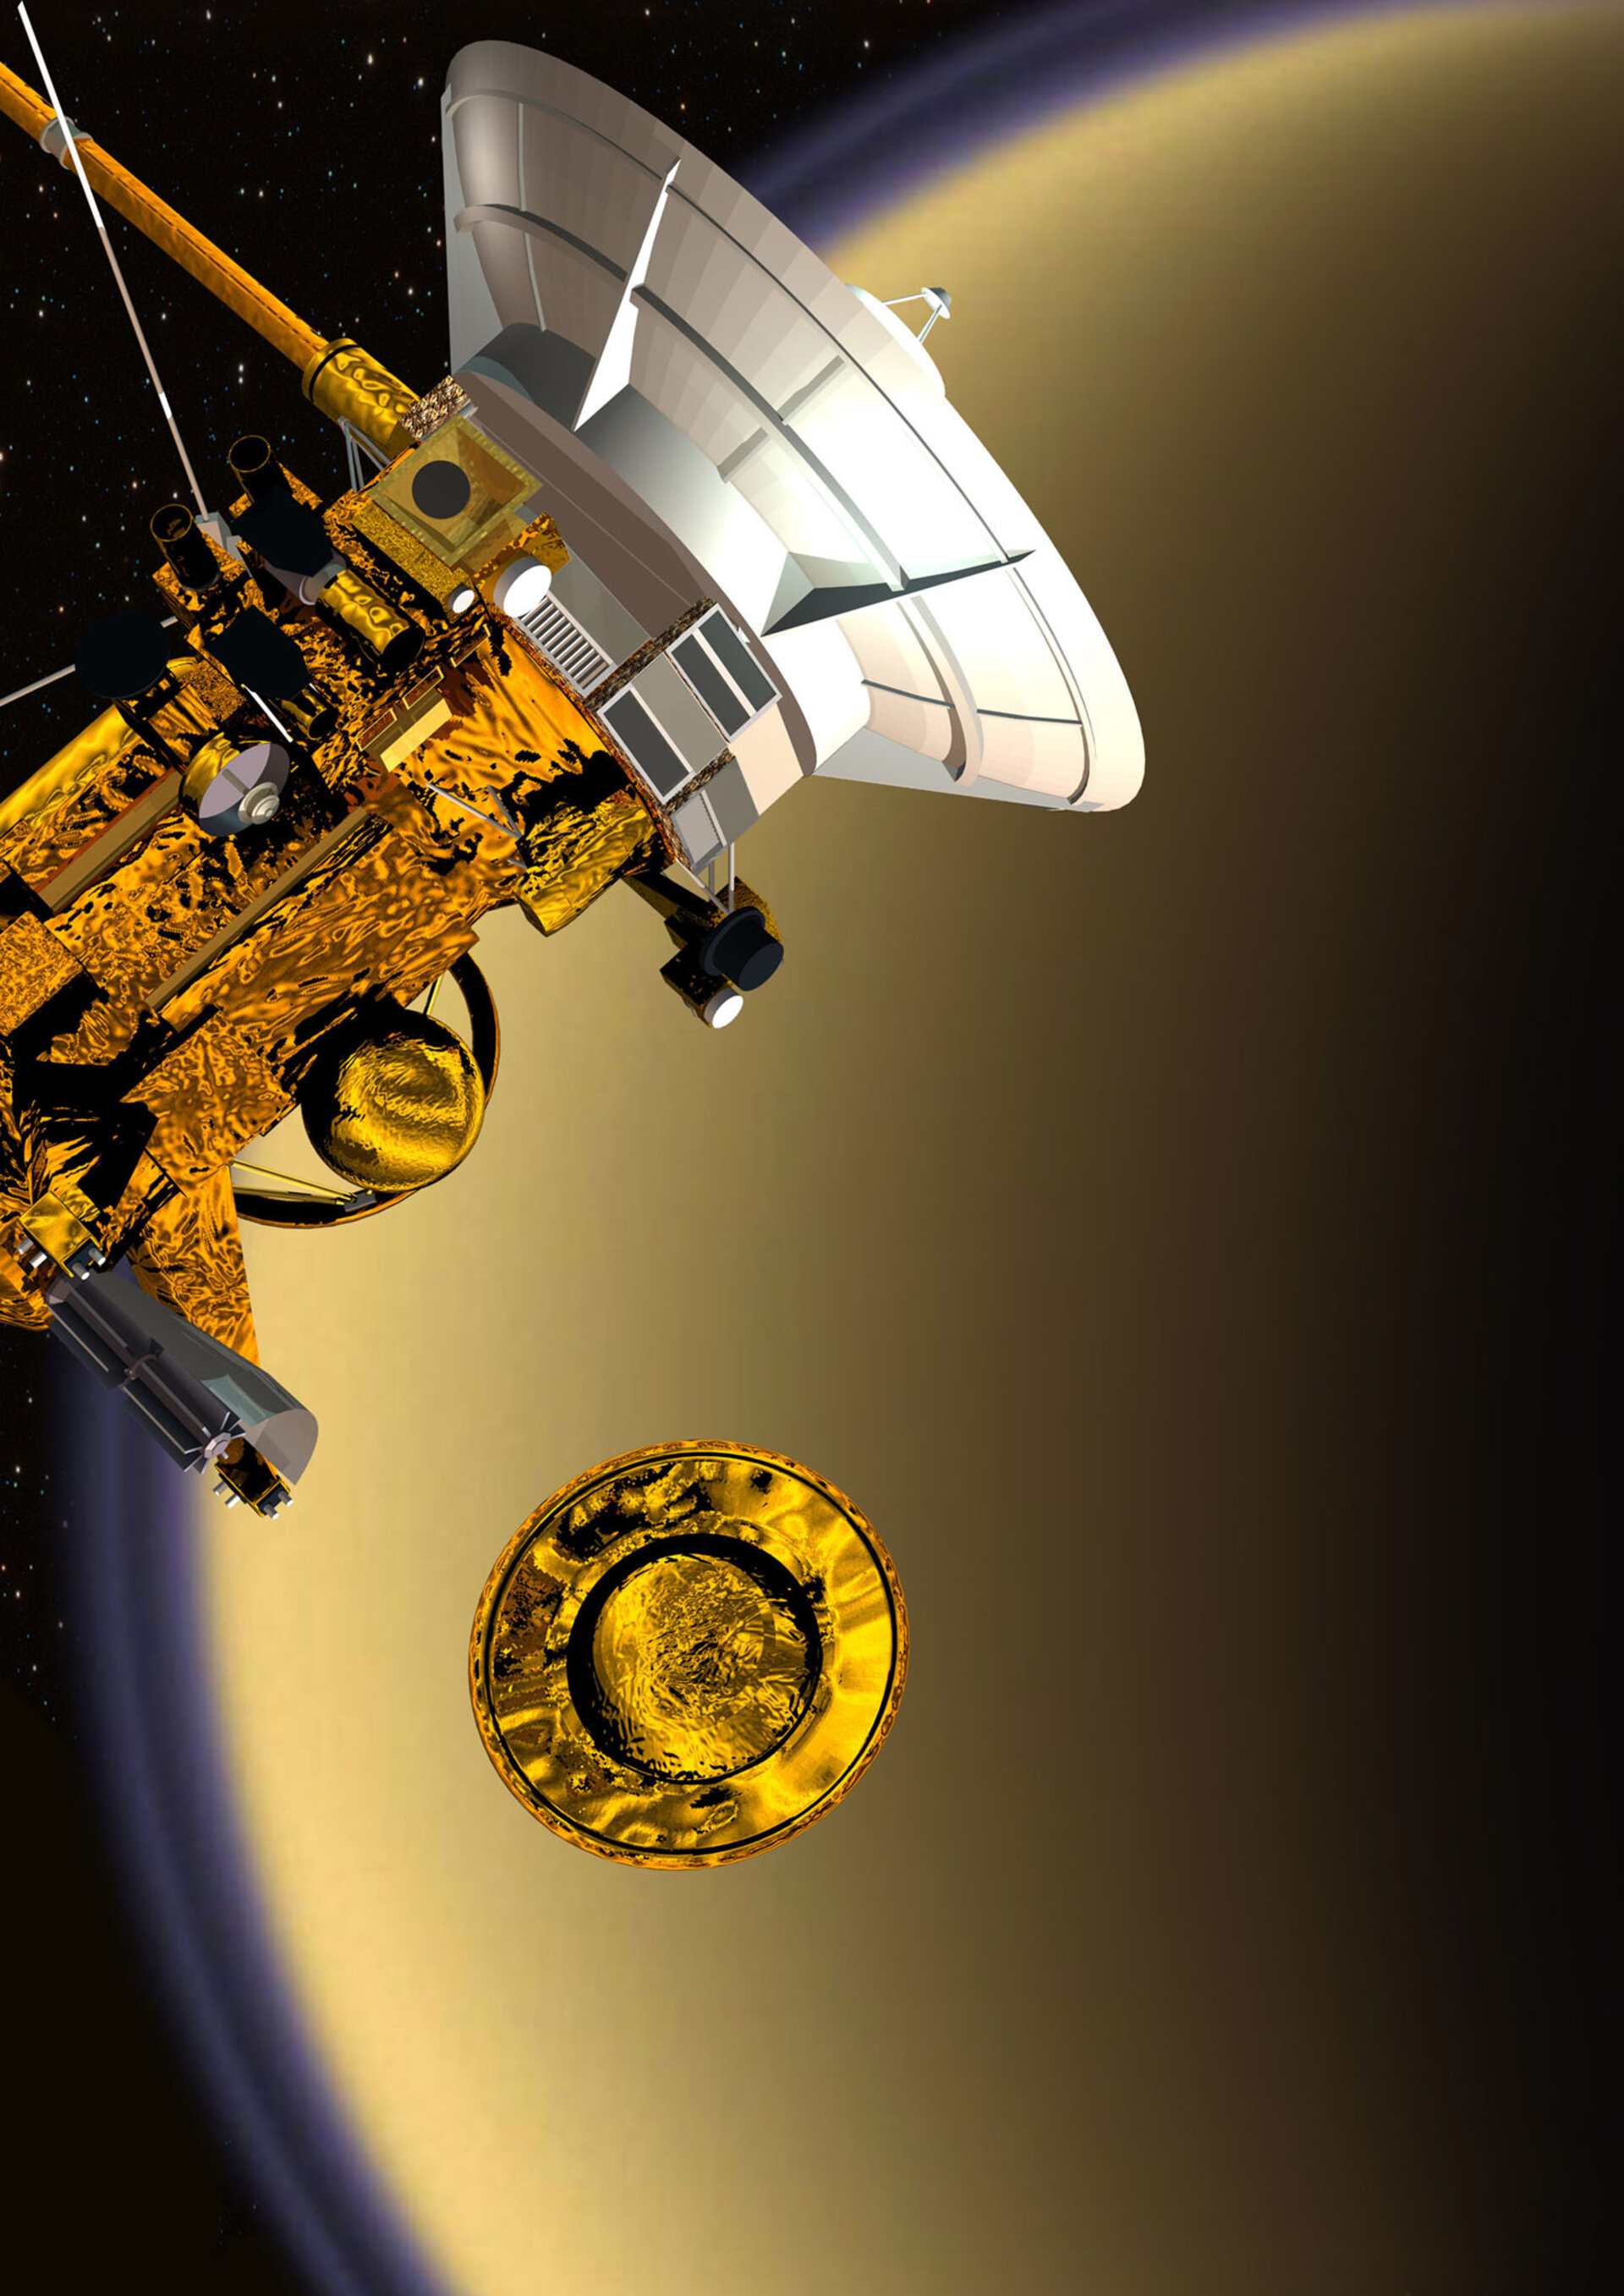 Separation of Huygens from Cassini